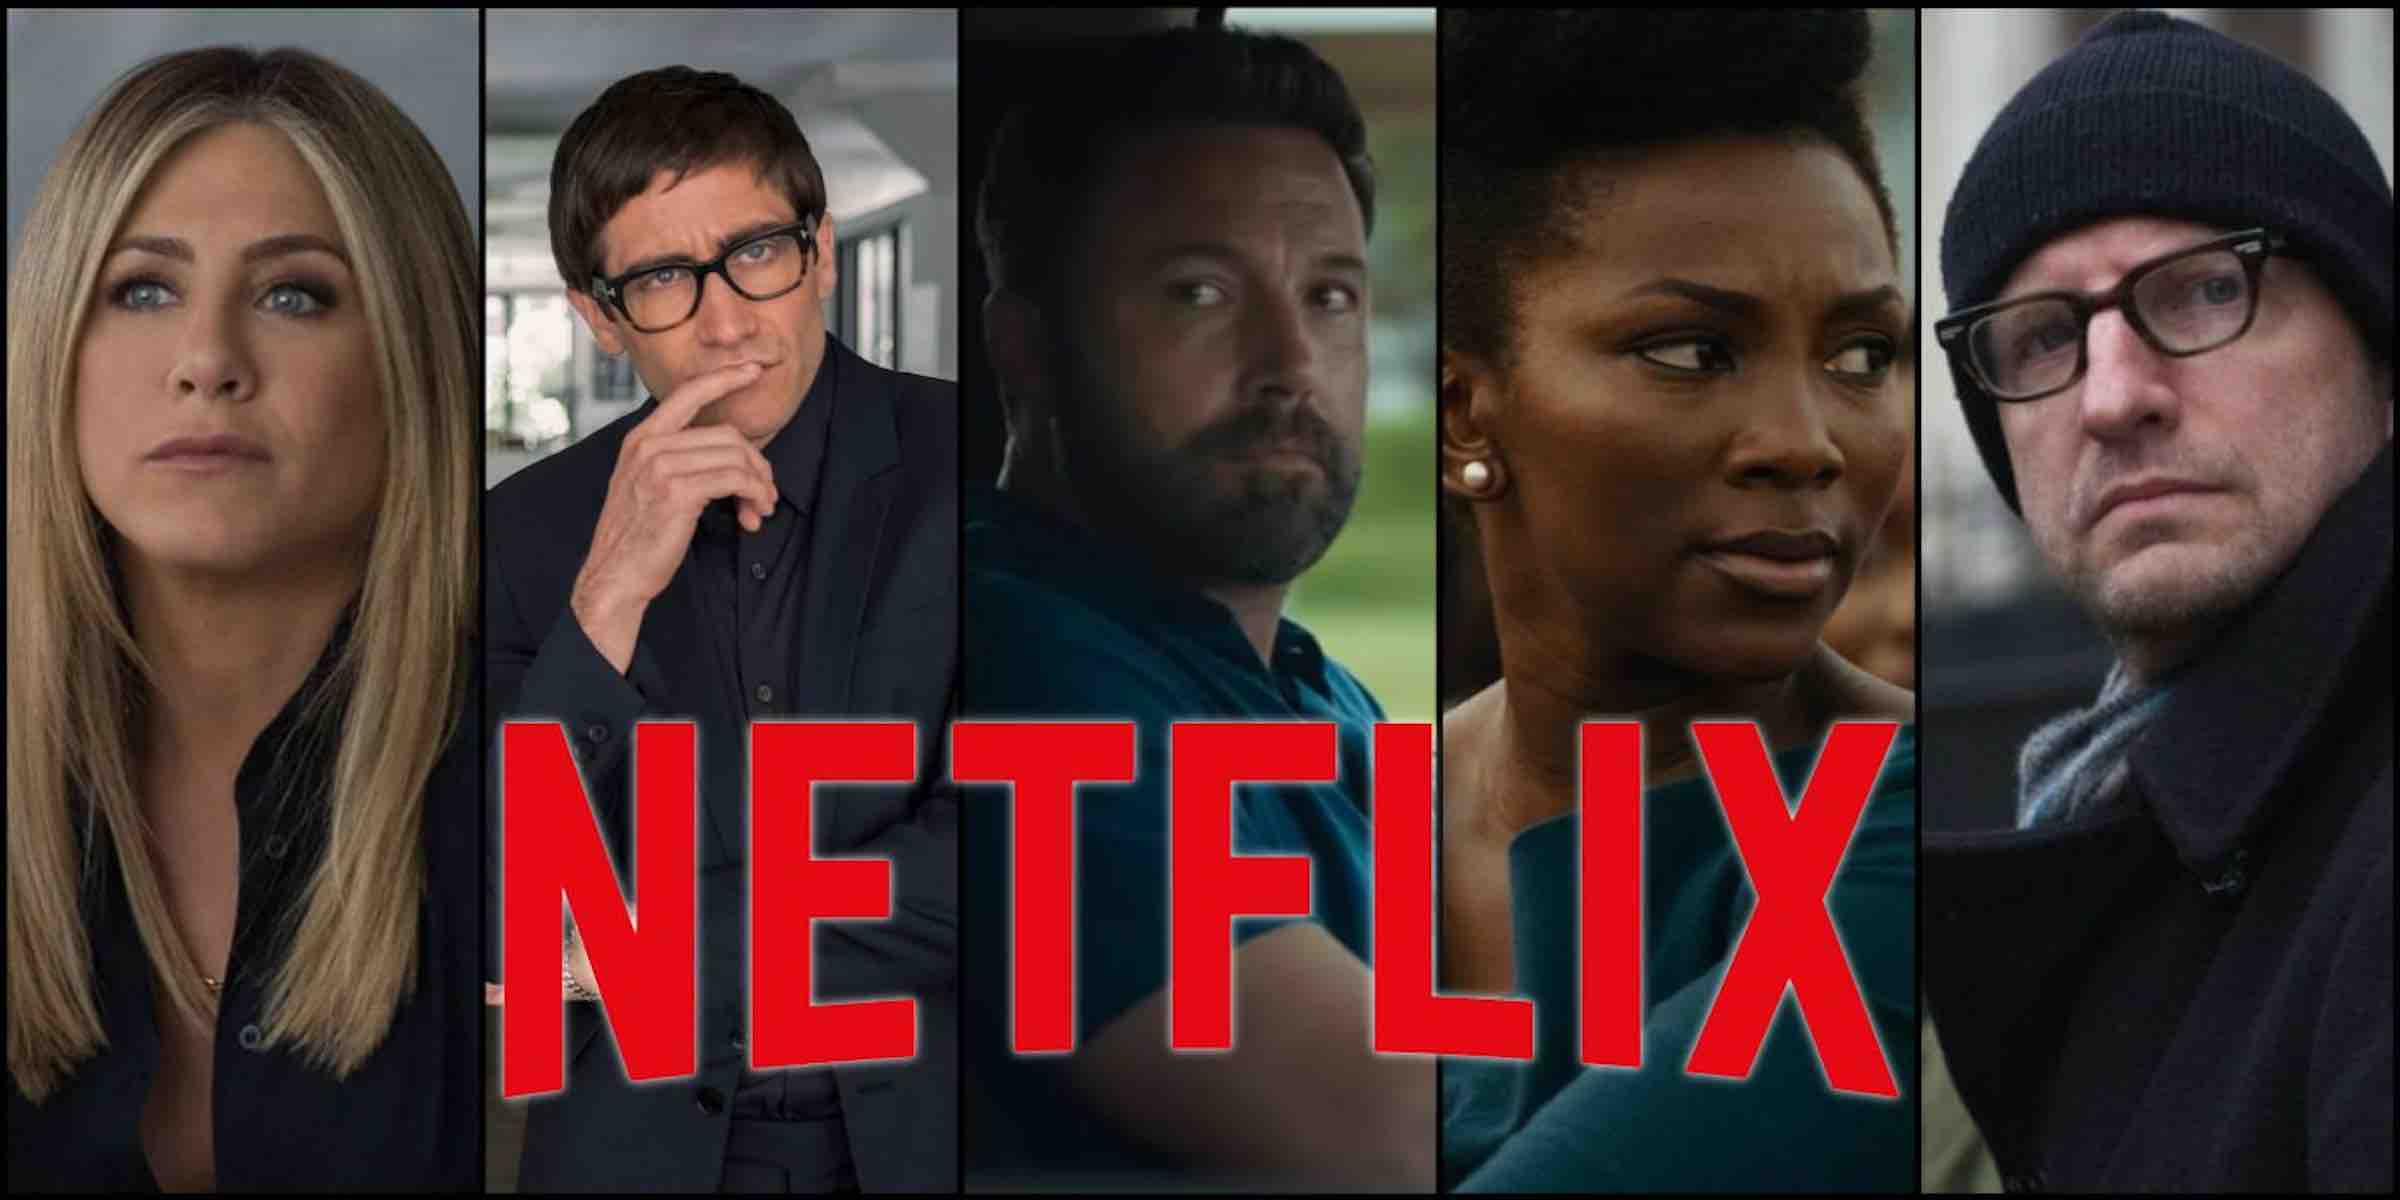 In the age of streaming and overcrowding of great TV, you need to know what bad shows to avoid. It's time to talk about the worst Netflix Originals.